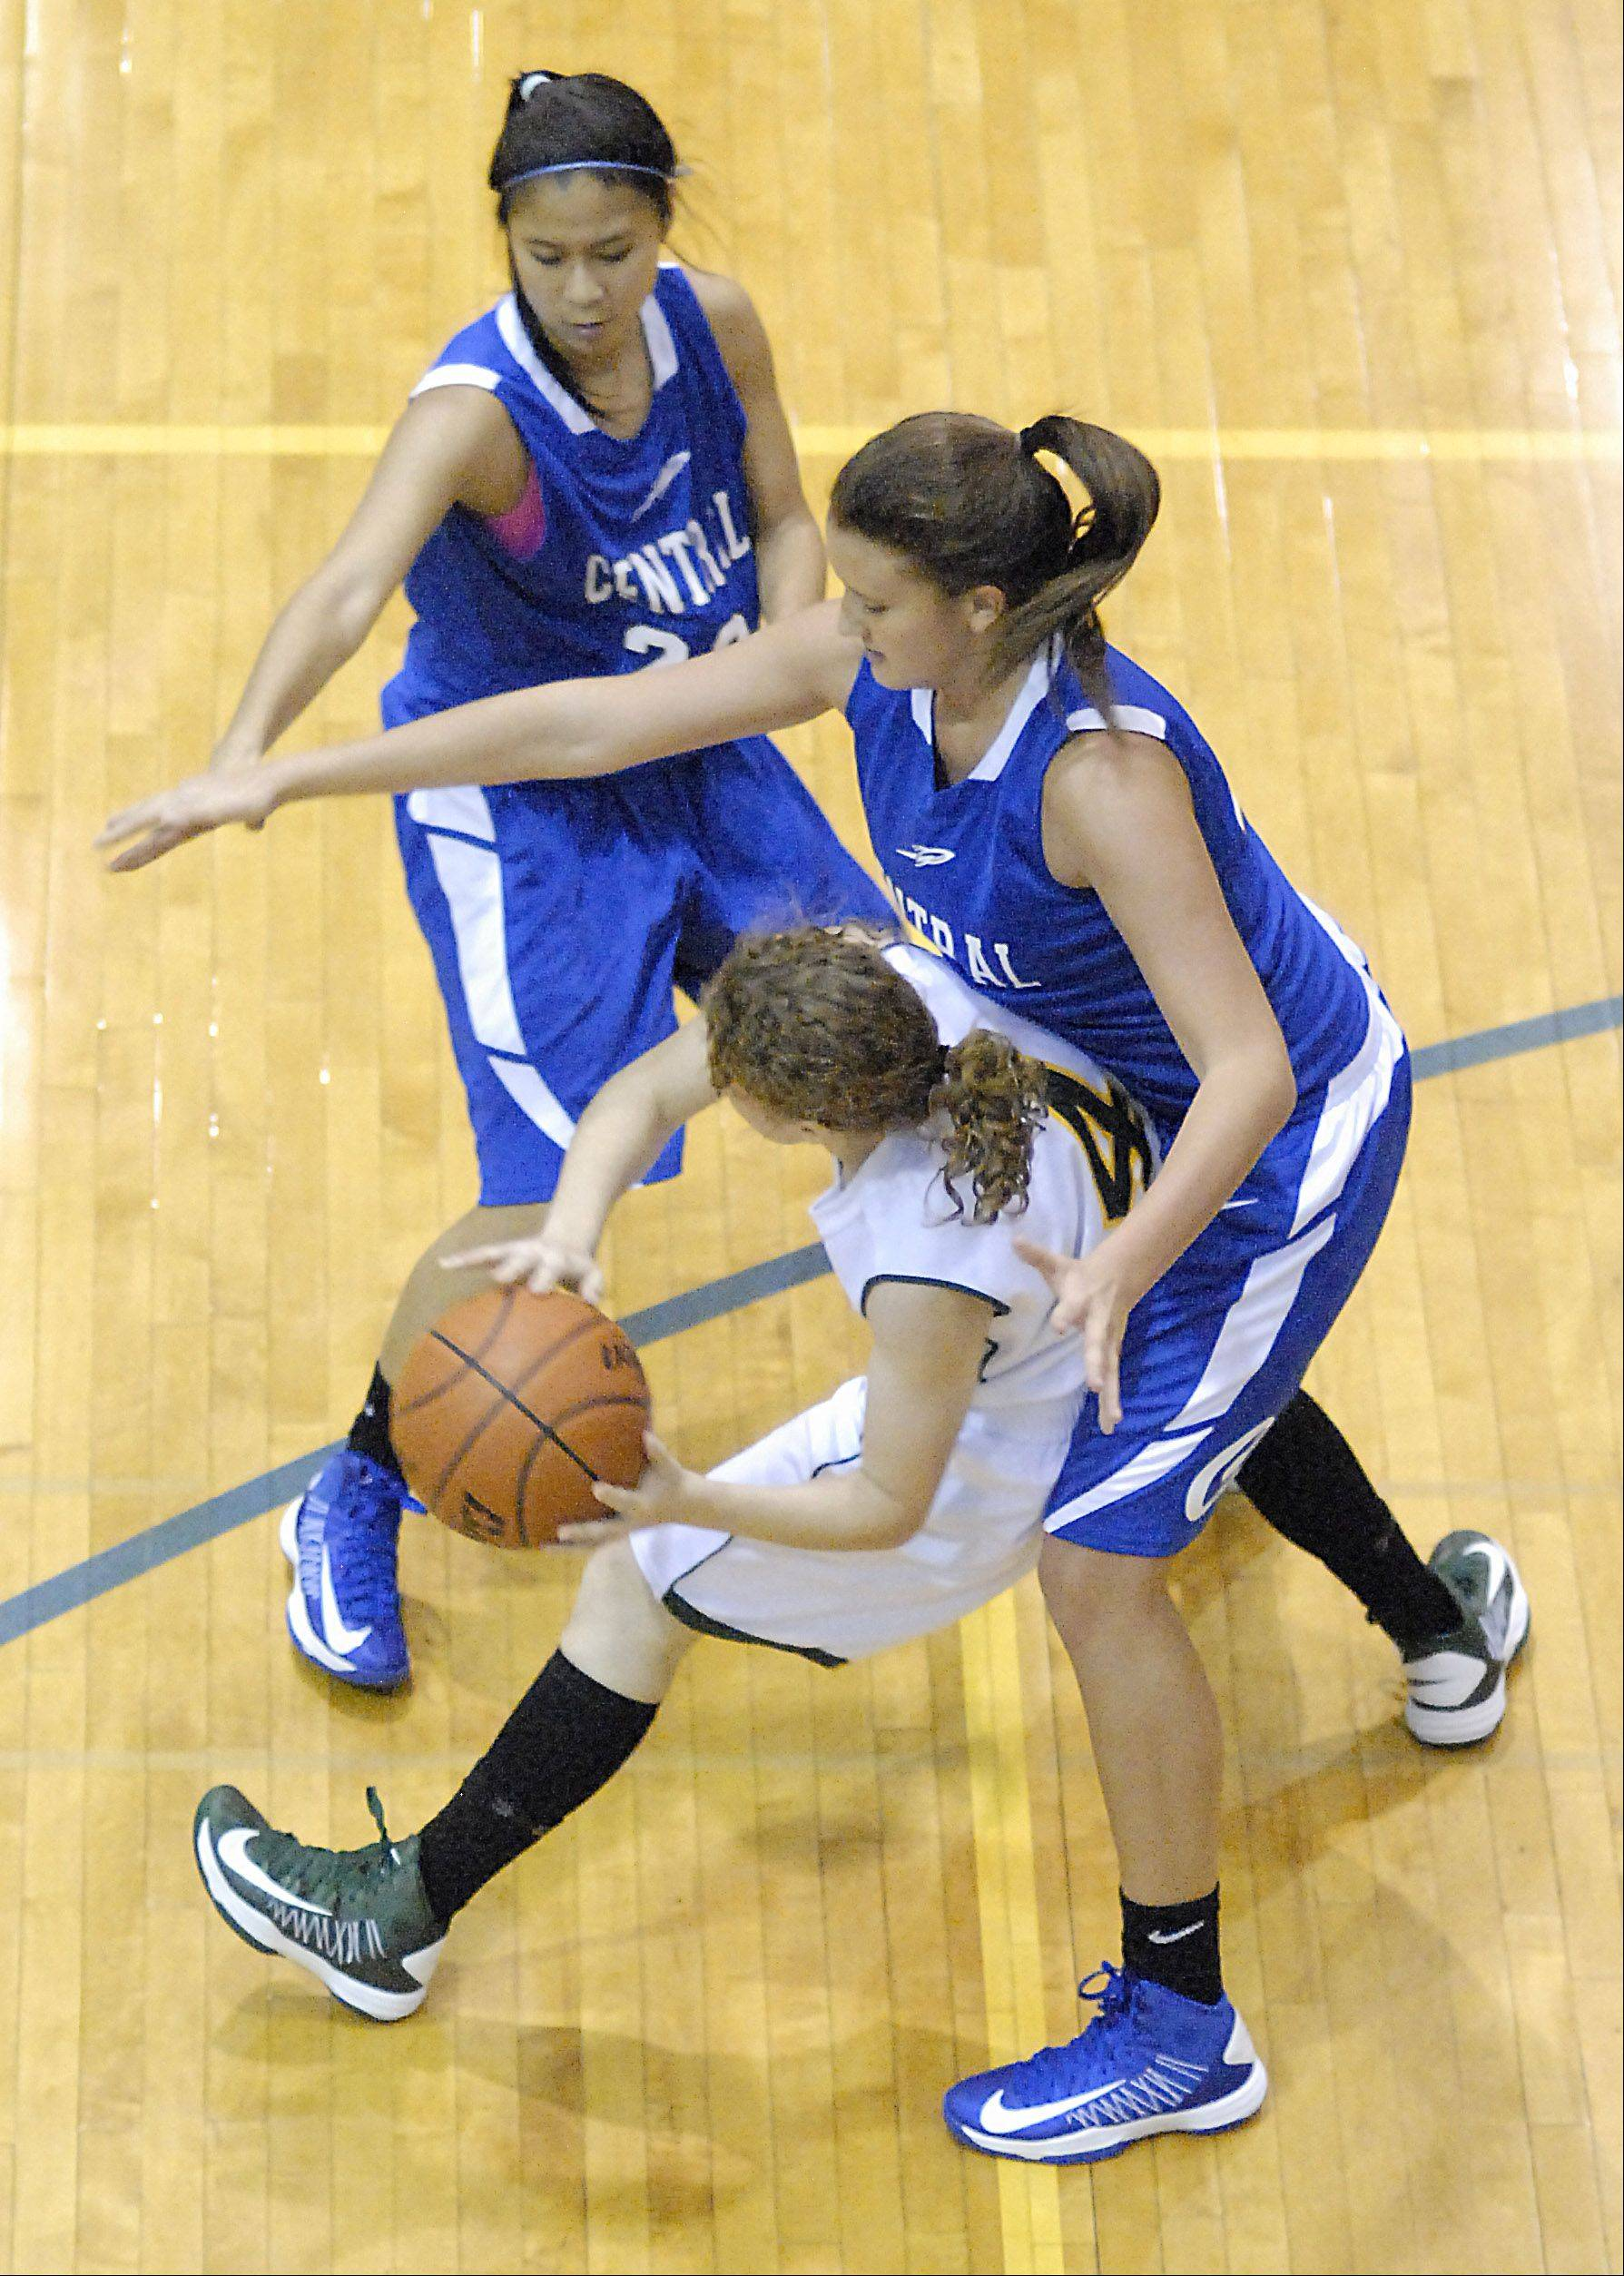 Burlington Central's Camille Delacruz and Alison Colby swarm Crystal Lake South's Carina Madoni during a Christmas tournament game.